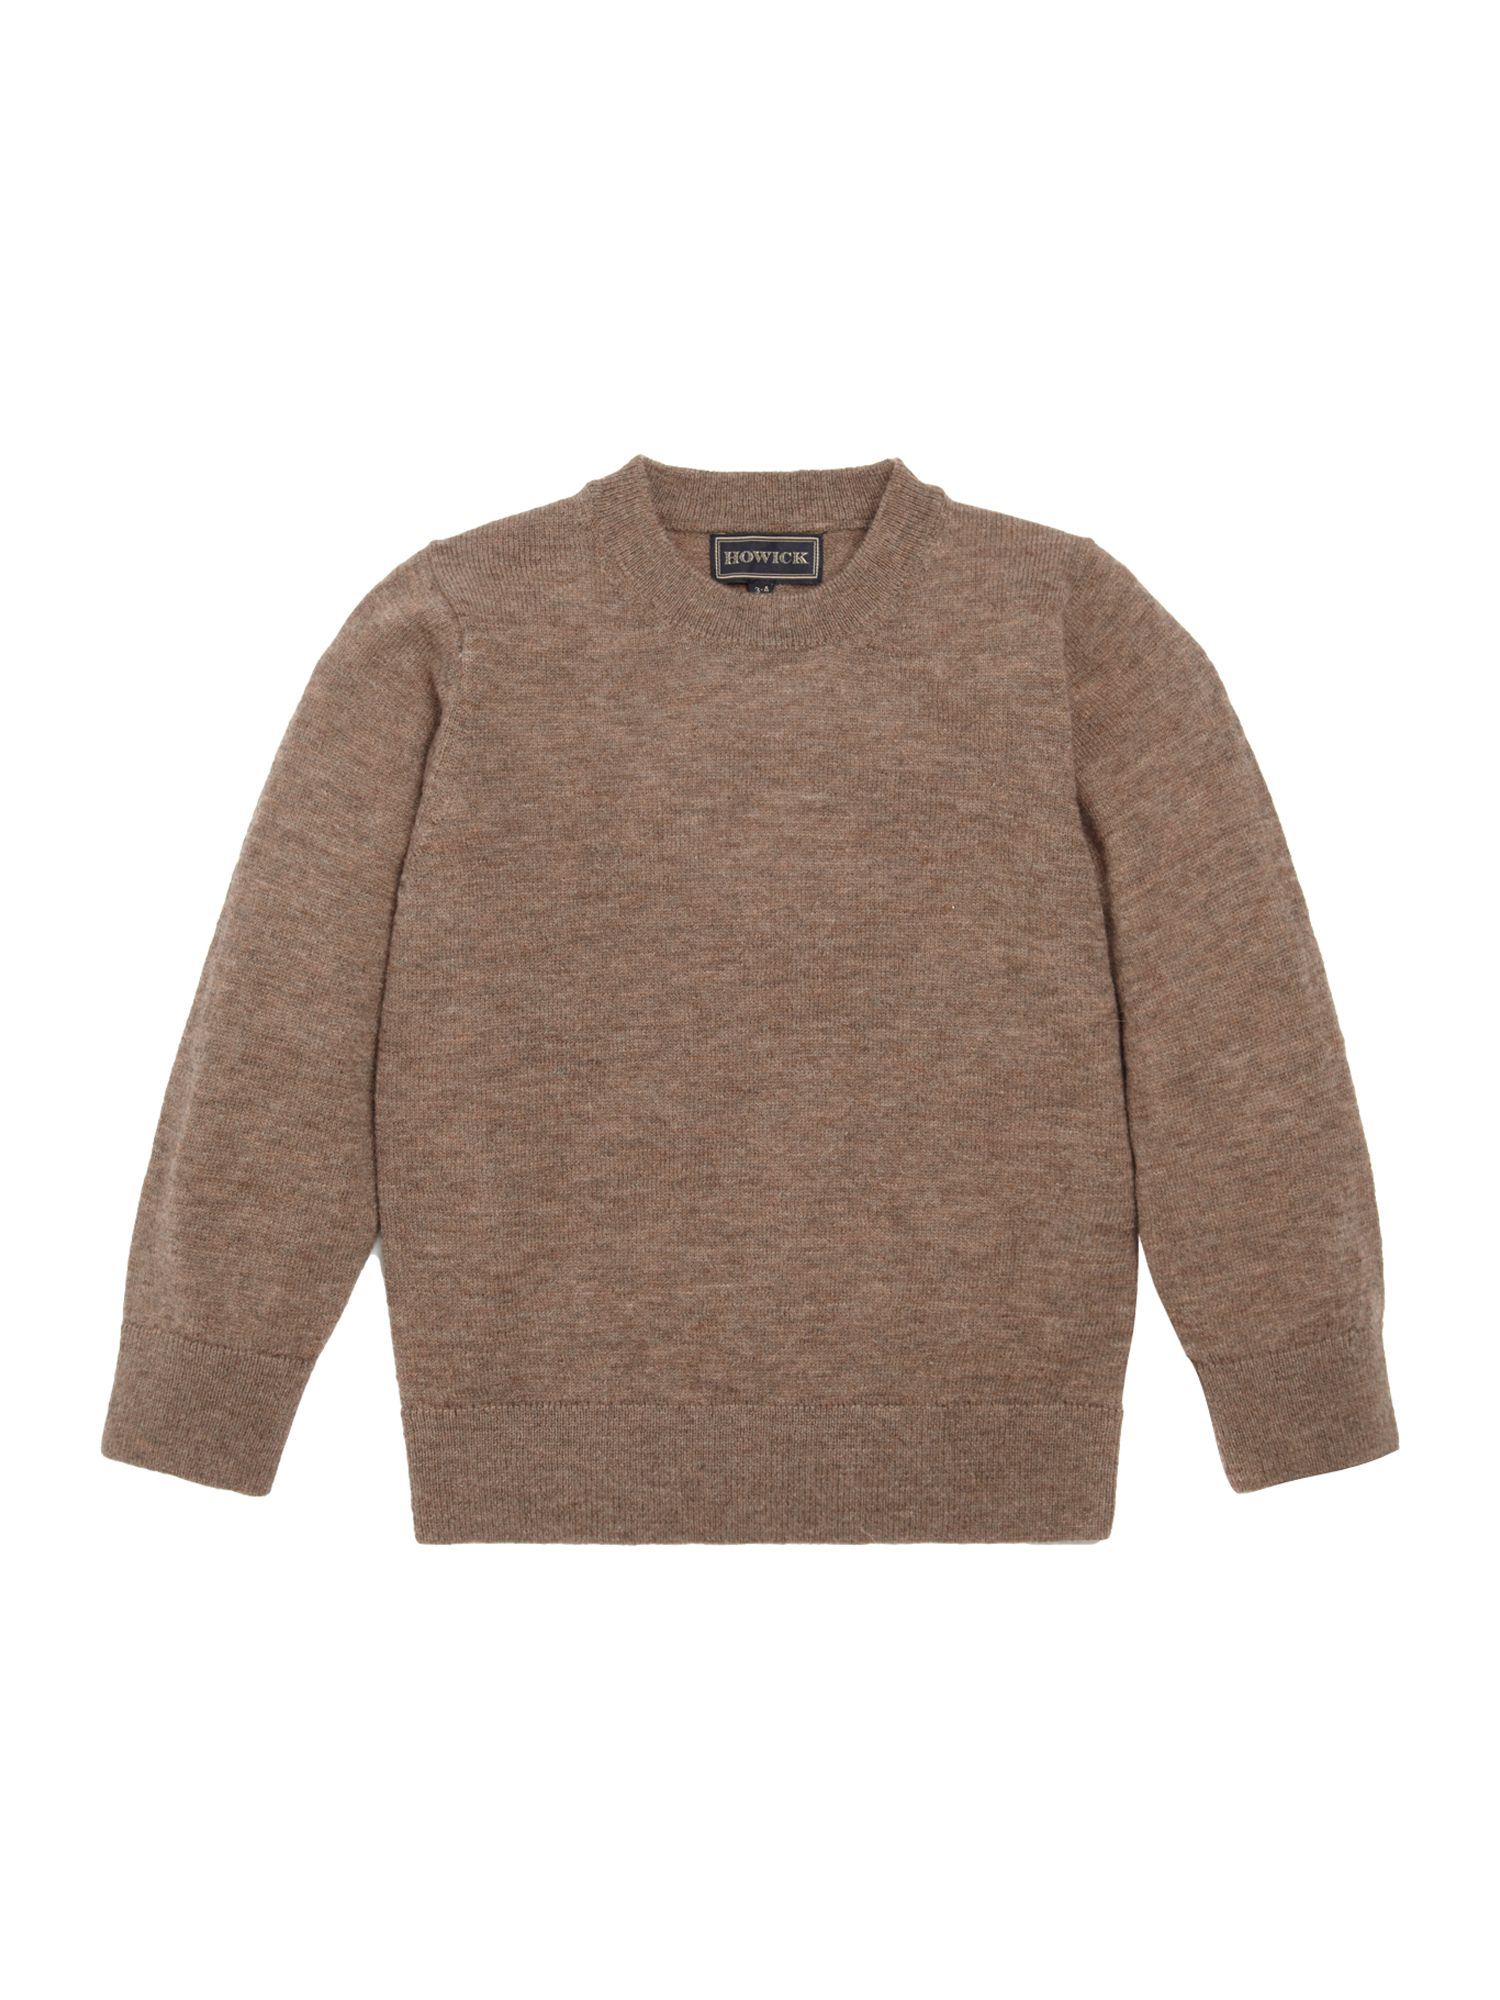 Boys lambswool crew neck jumper